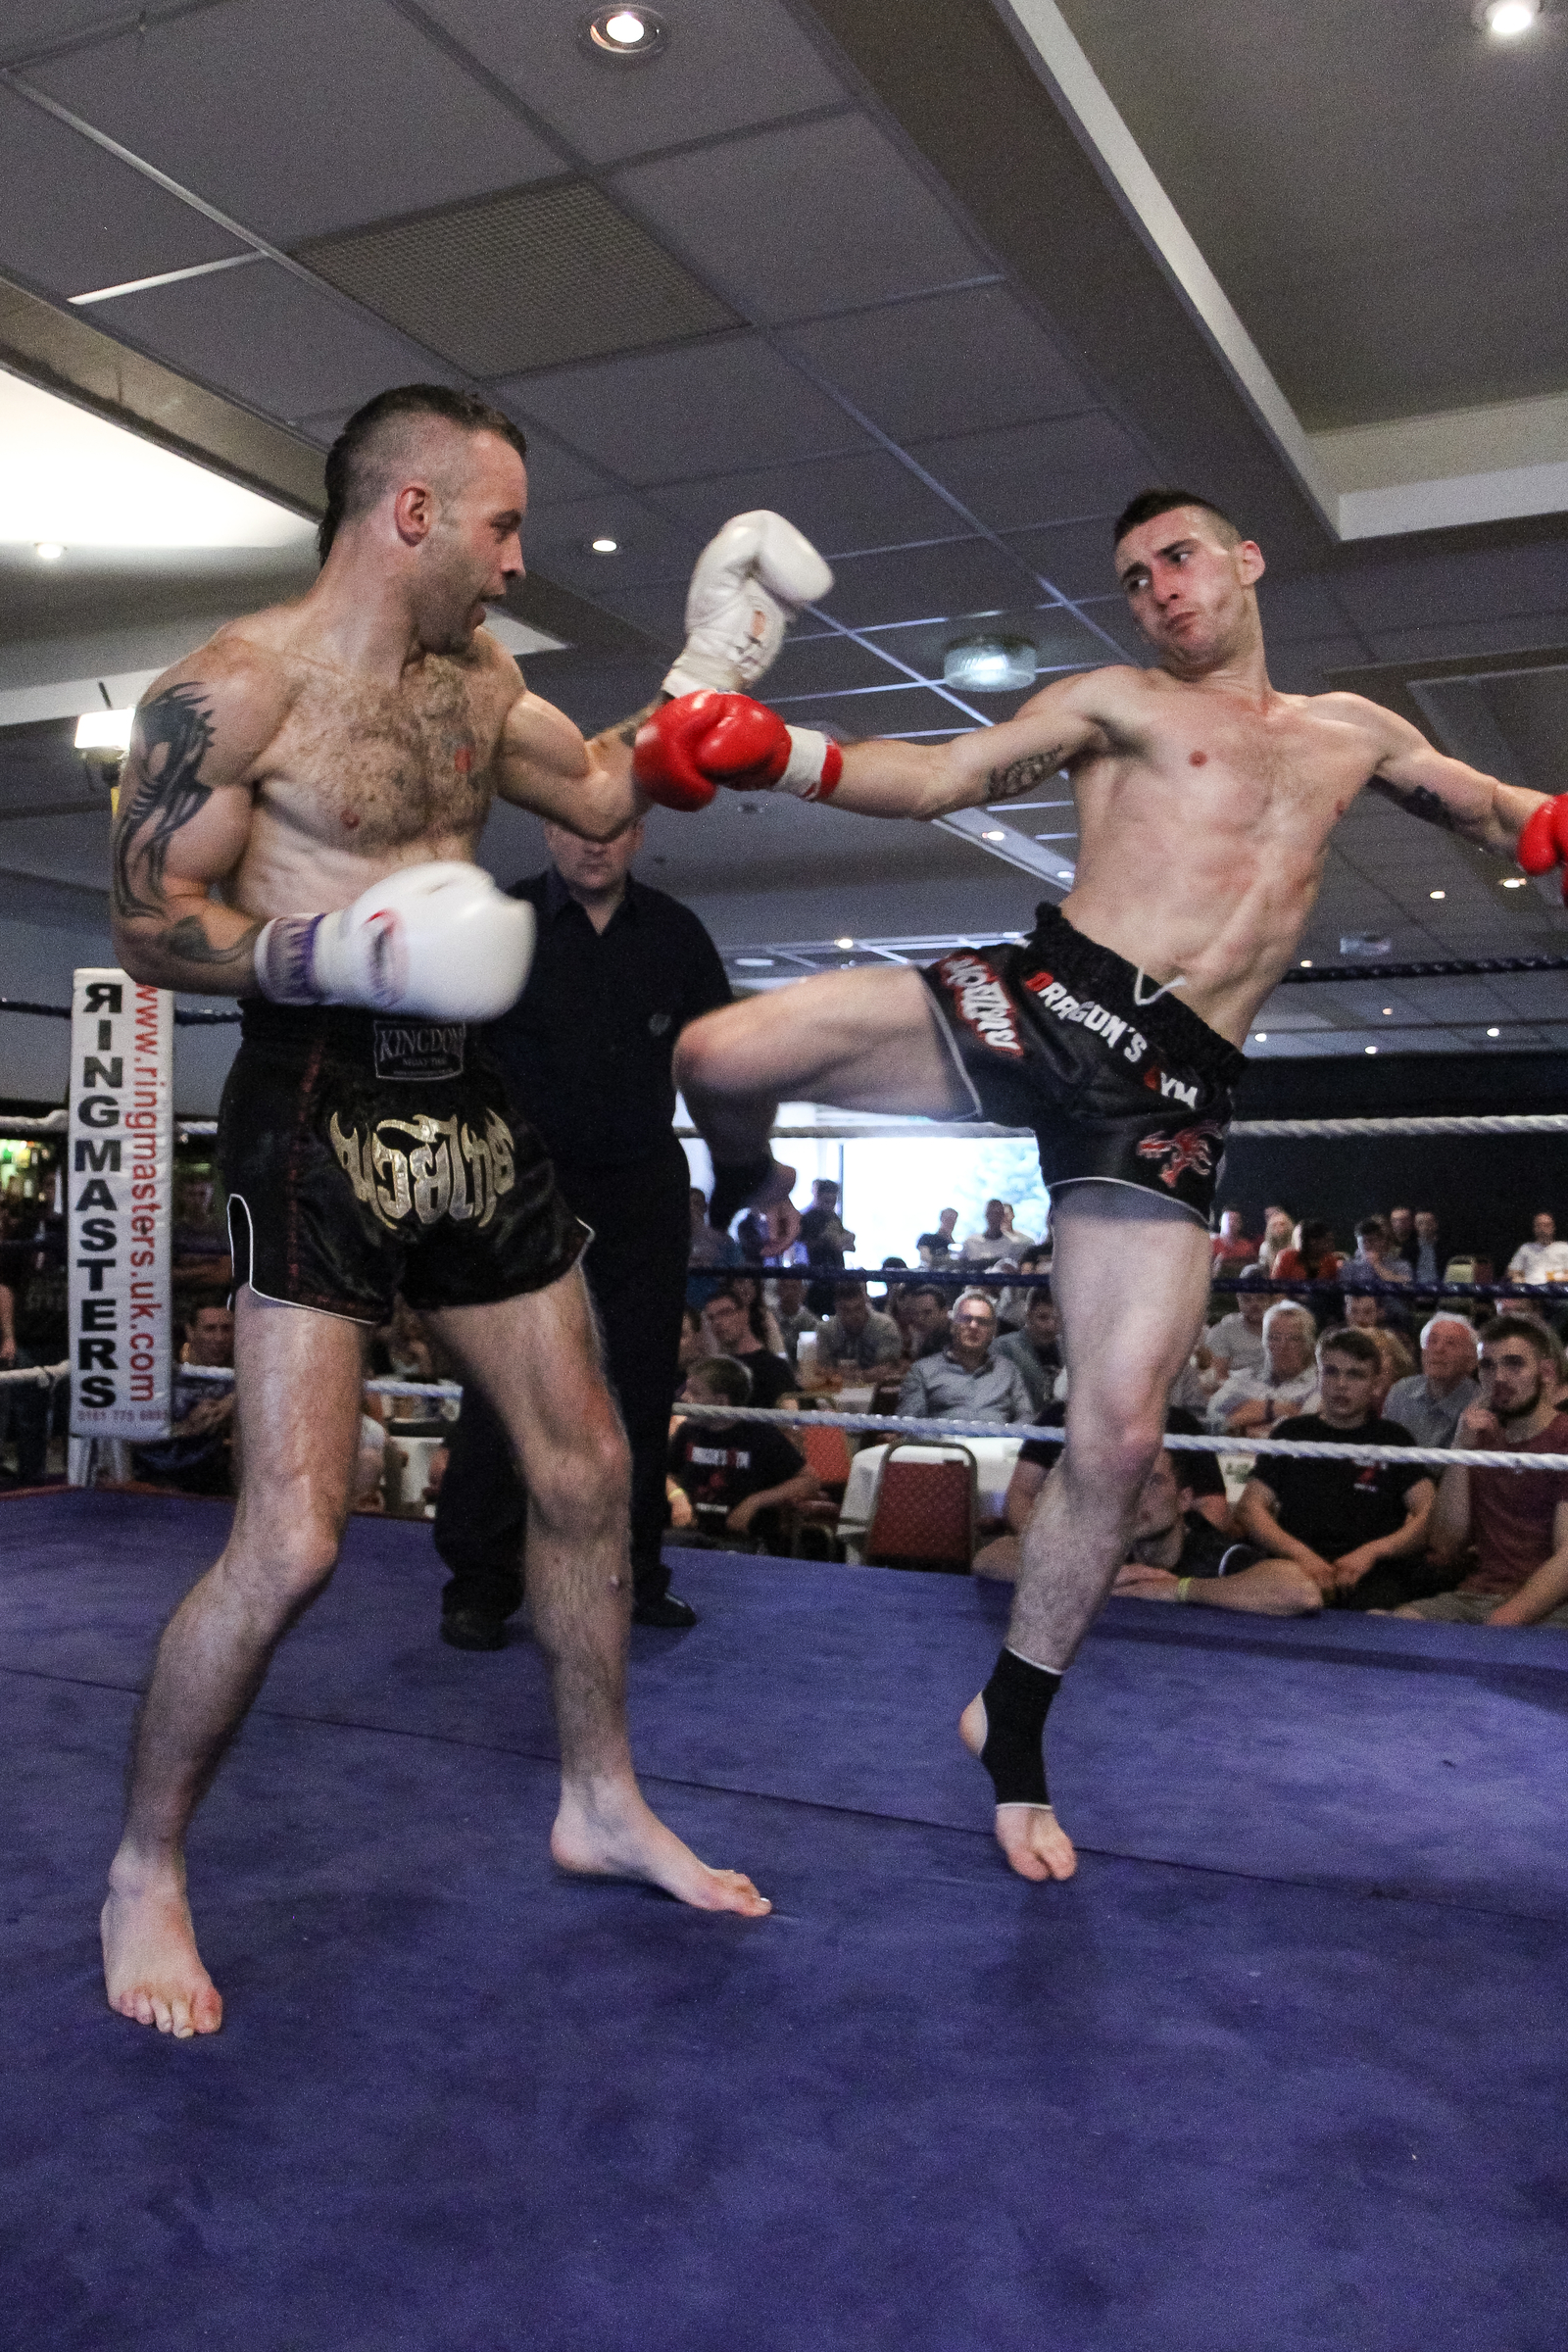 stand2fight-14-high-res-howarthphotograp